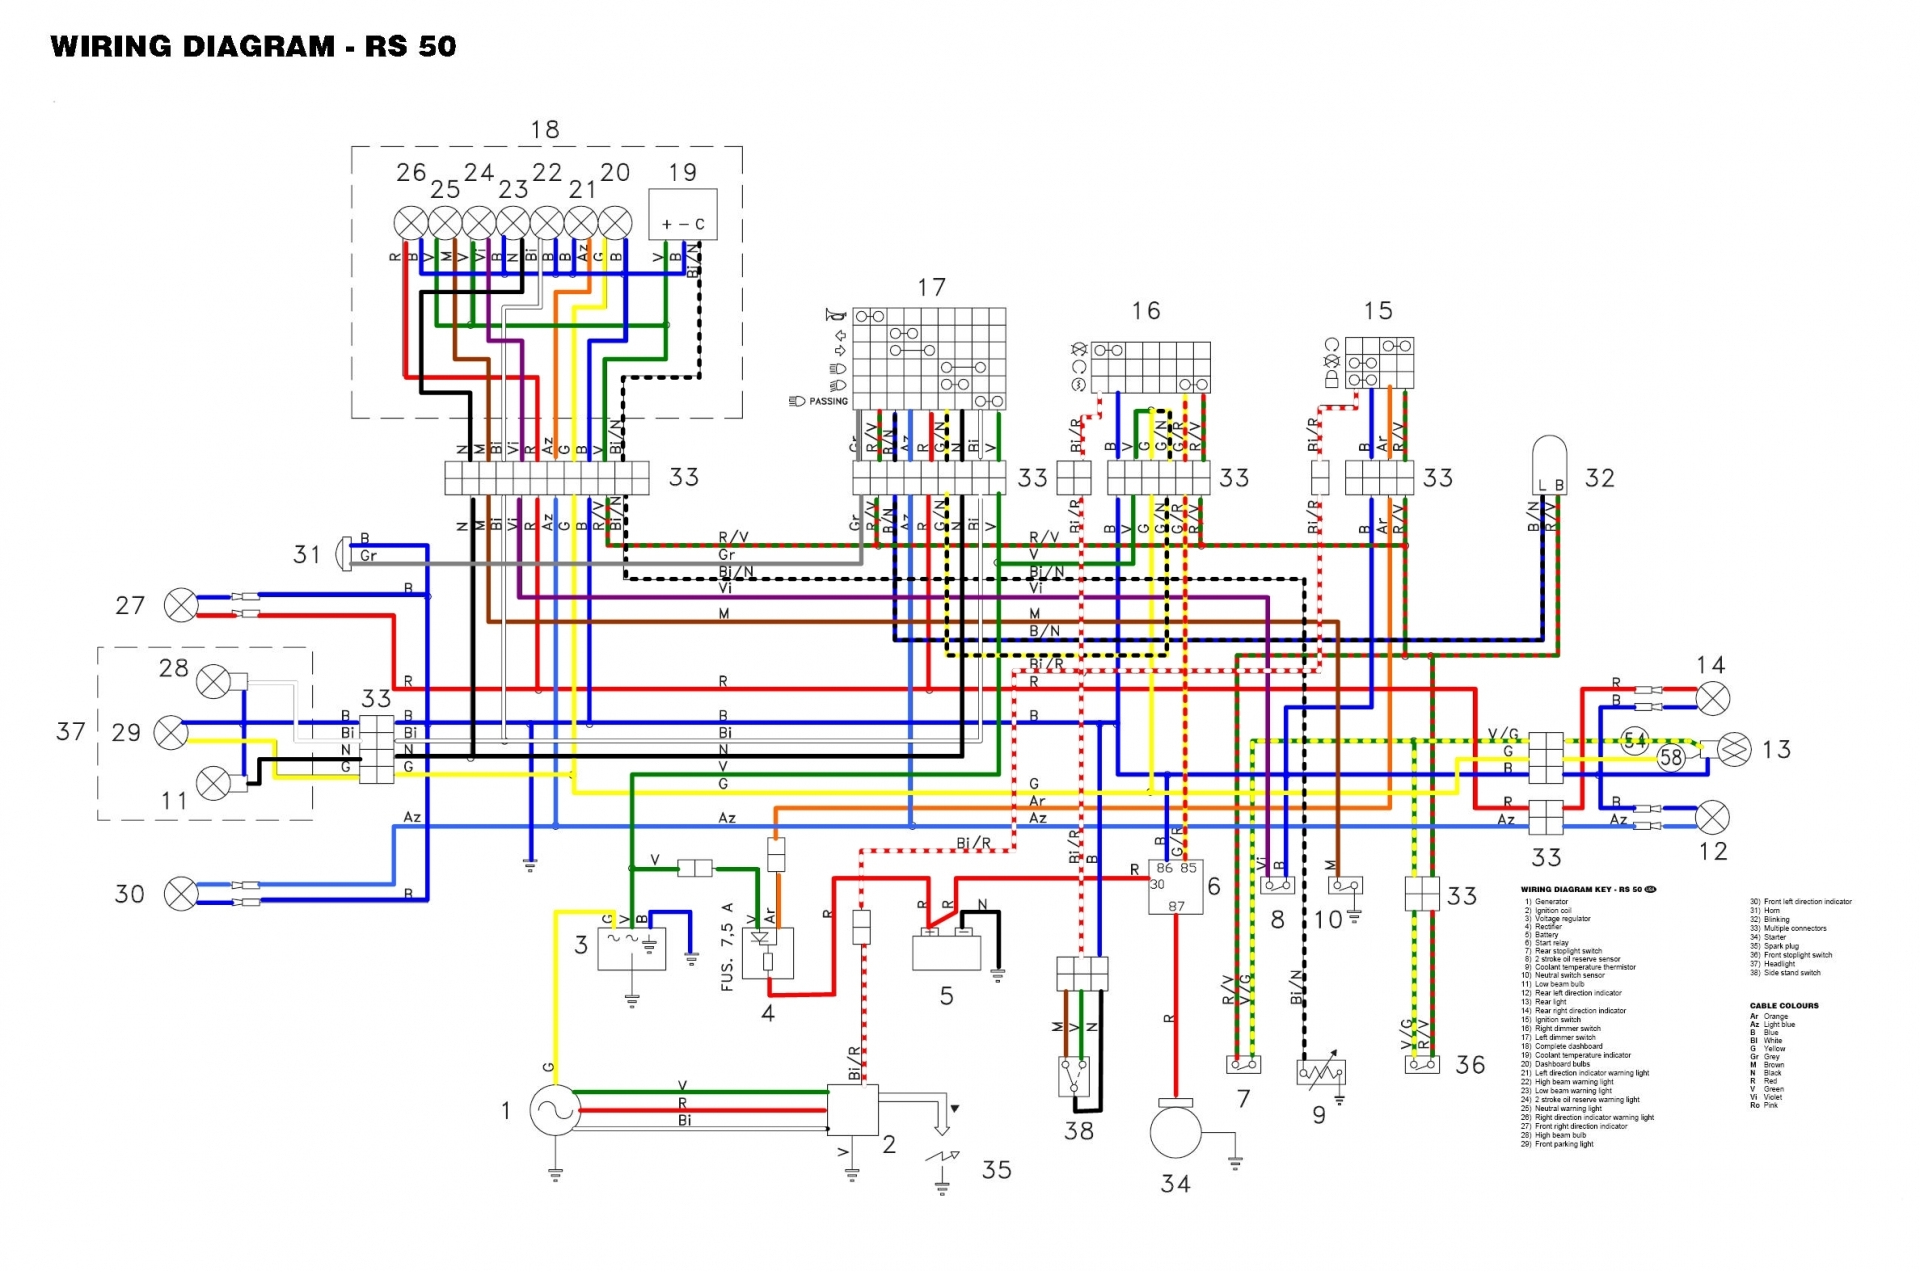 Honda Xr50 Wiring Diagram Schematic Diagrams Xr50r Xr200 Xr250r 110cc